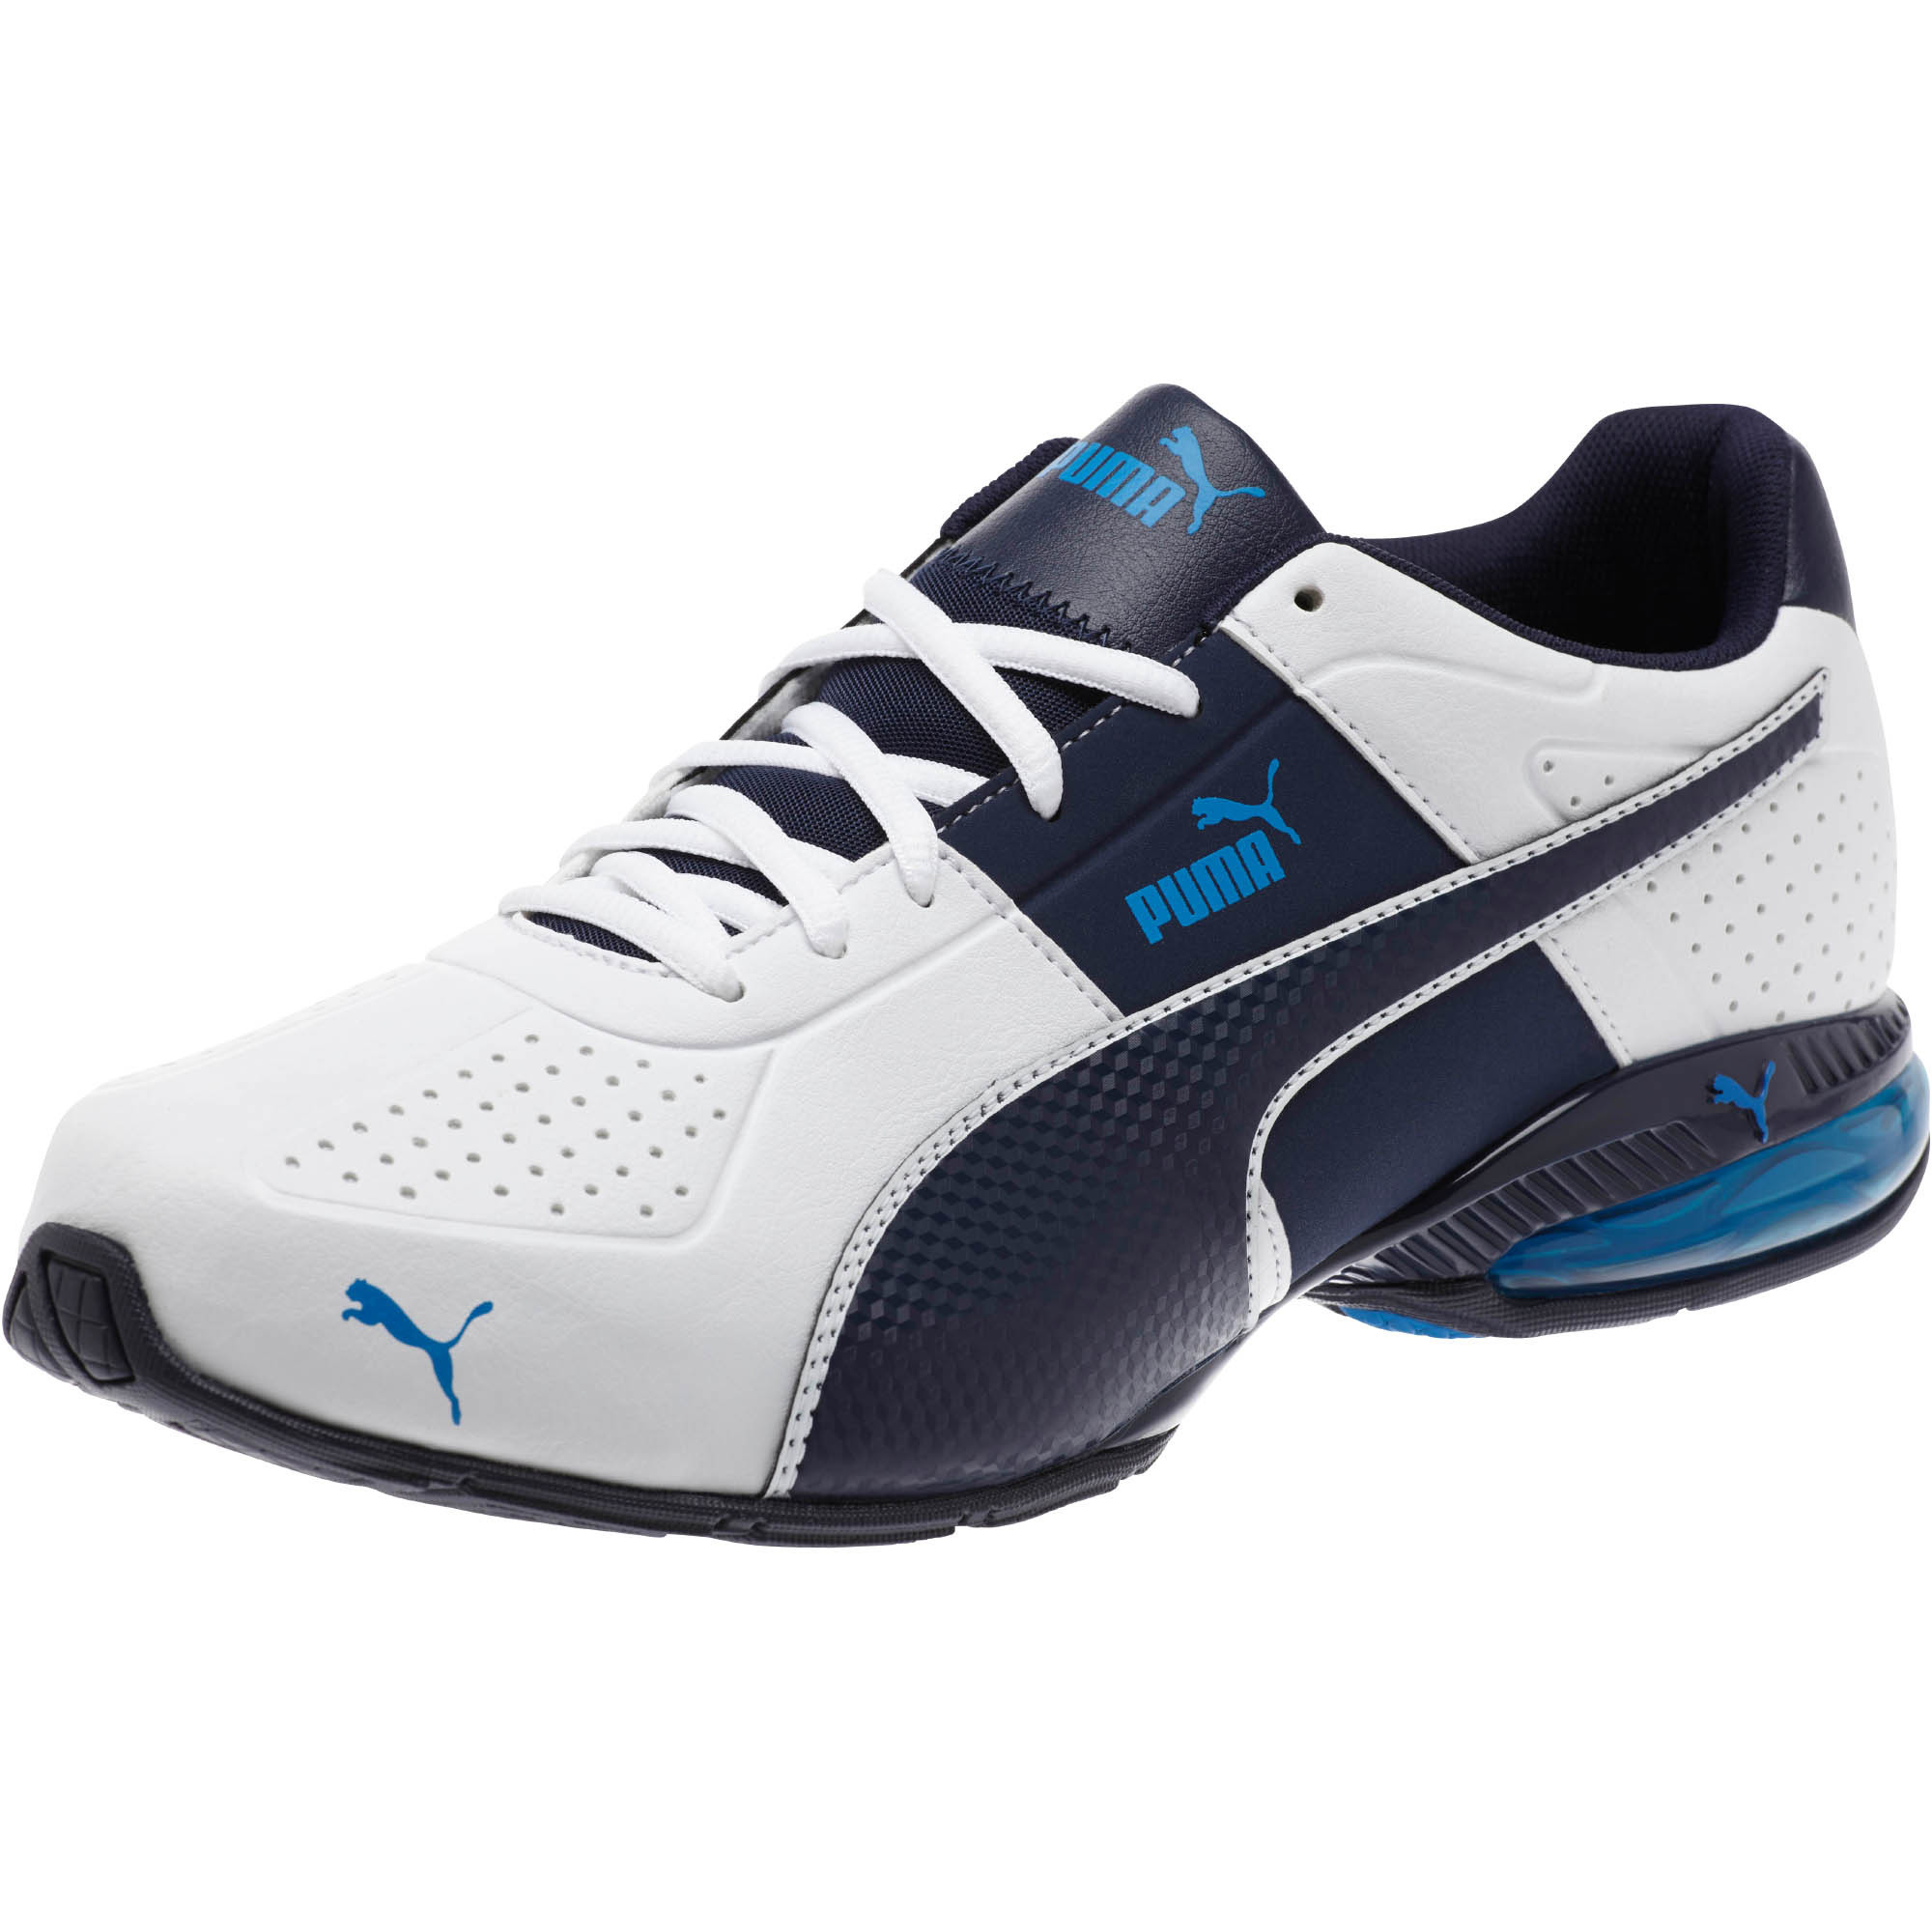 PUMA-Men-039-s-CELL-Surin-2-FM-Running-Shoes thumbnail 24